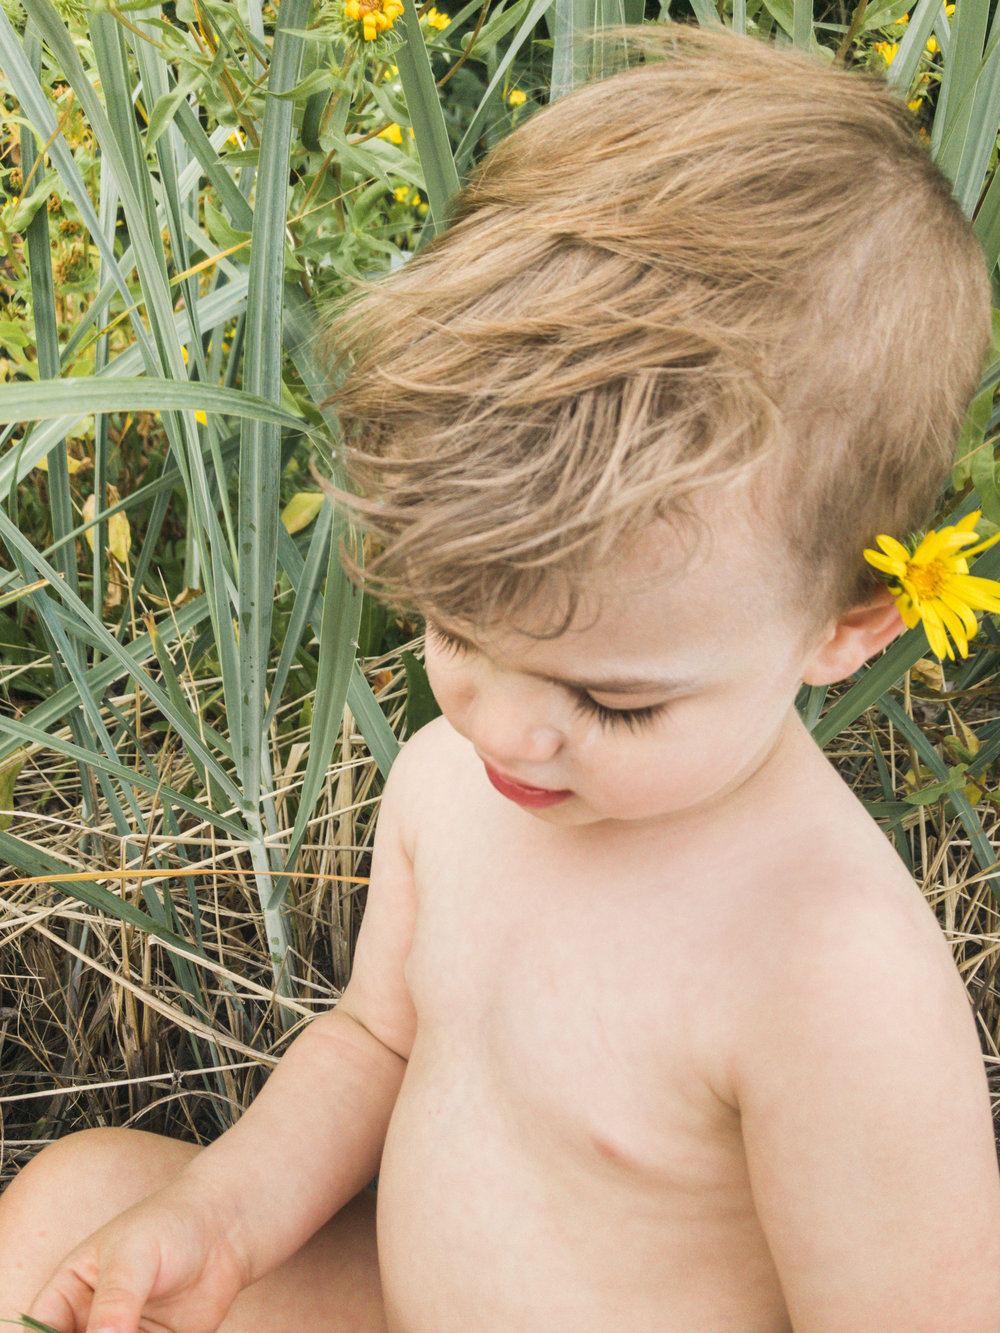 Rufus in the Daisies, Natural Light Photography Seattle Wa Lifestyle Family and Toddler Children Photos by Chelsea Macor Photograhy-2.jpg